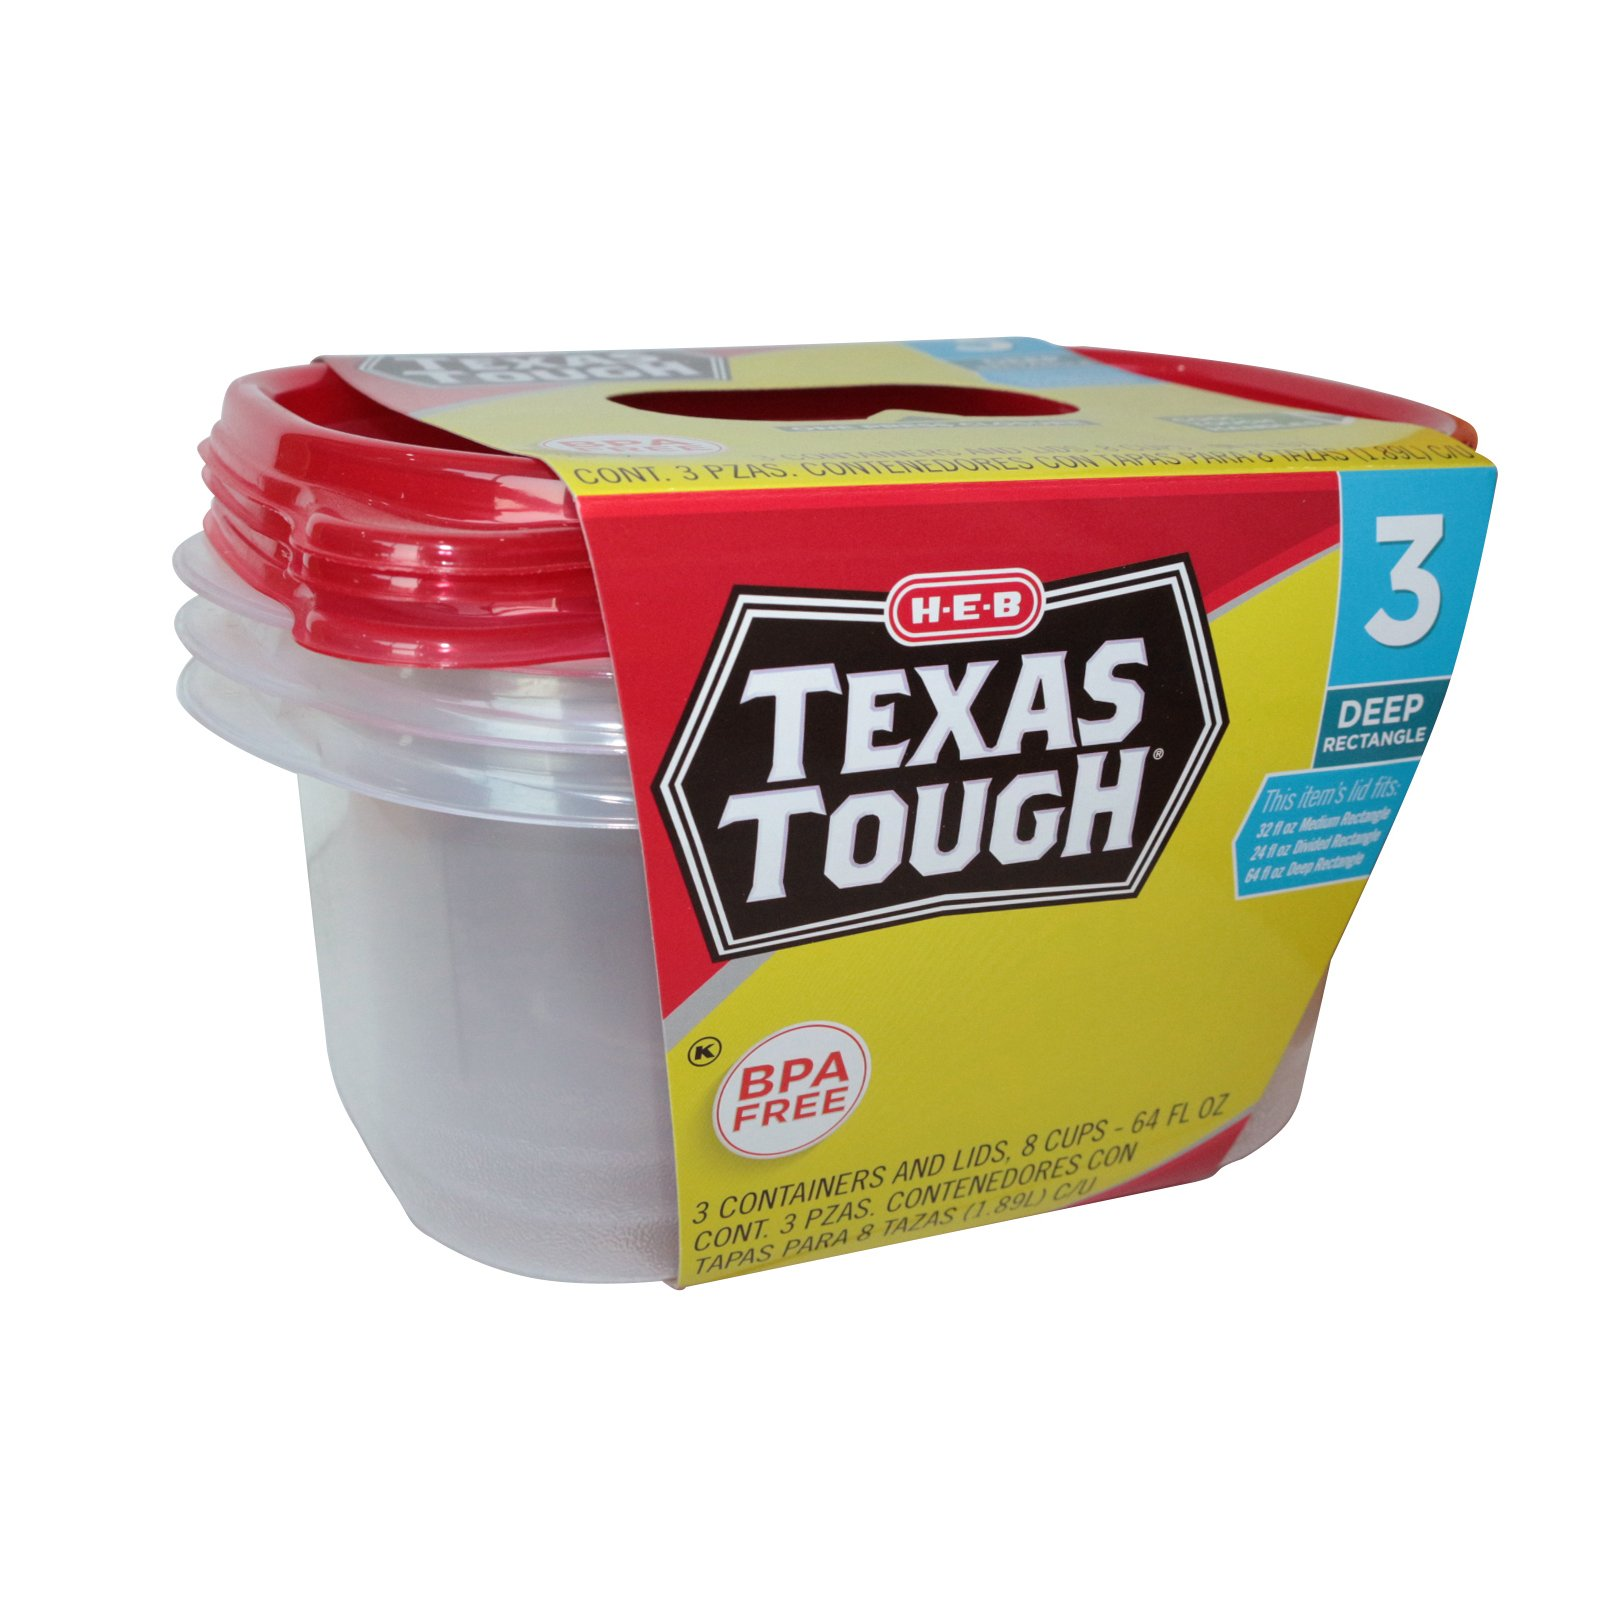 containers shop heb everyday low prices online